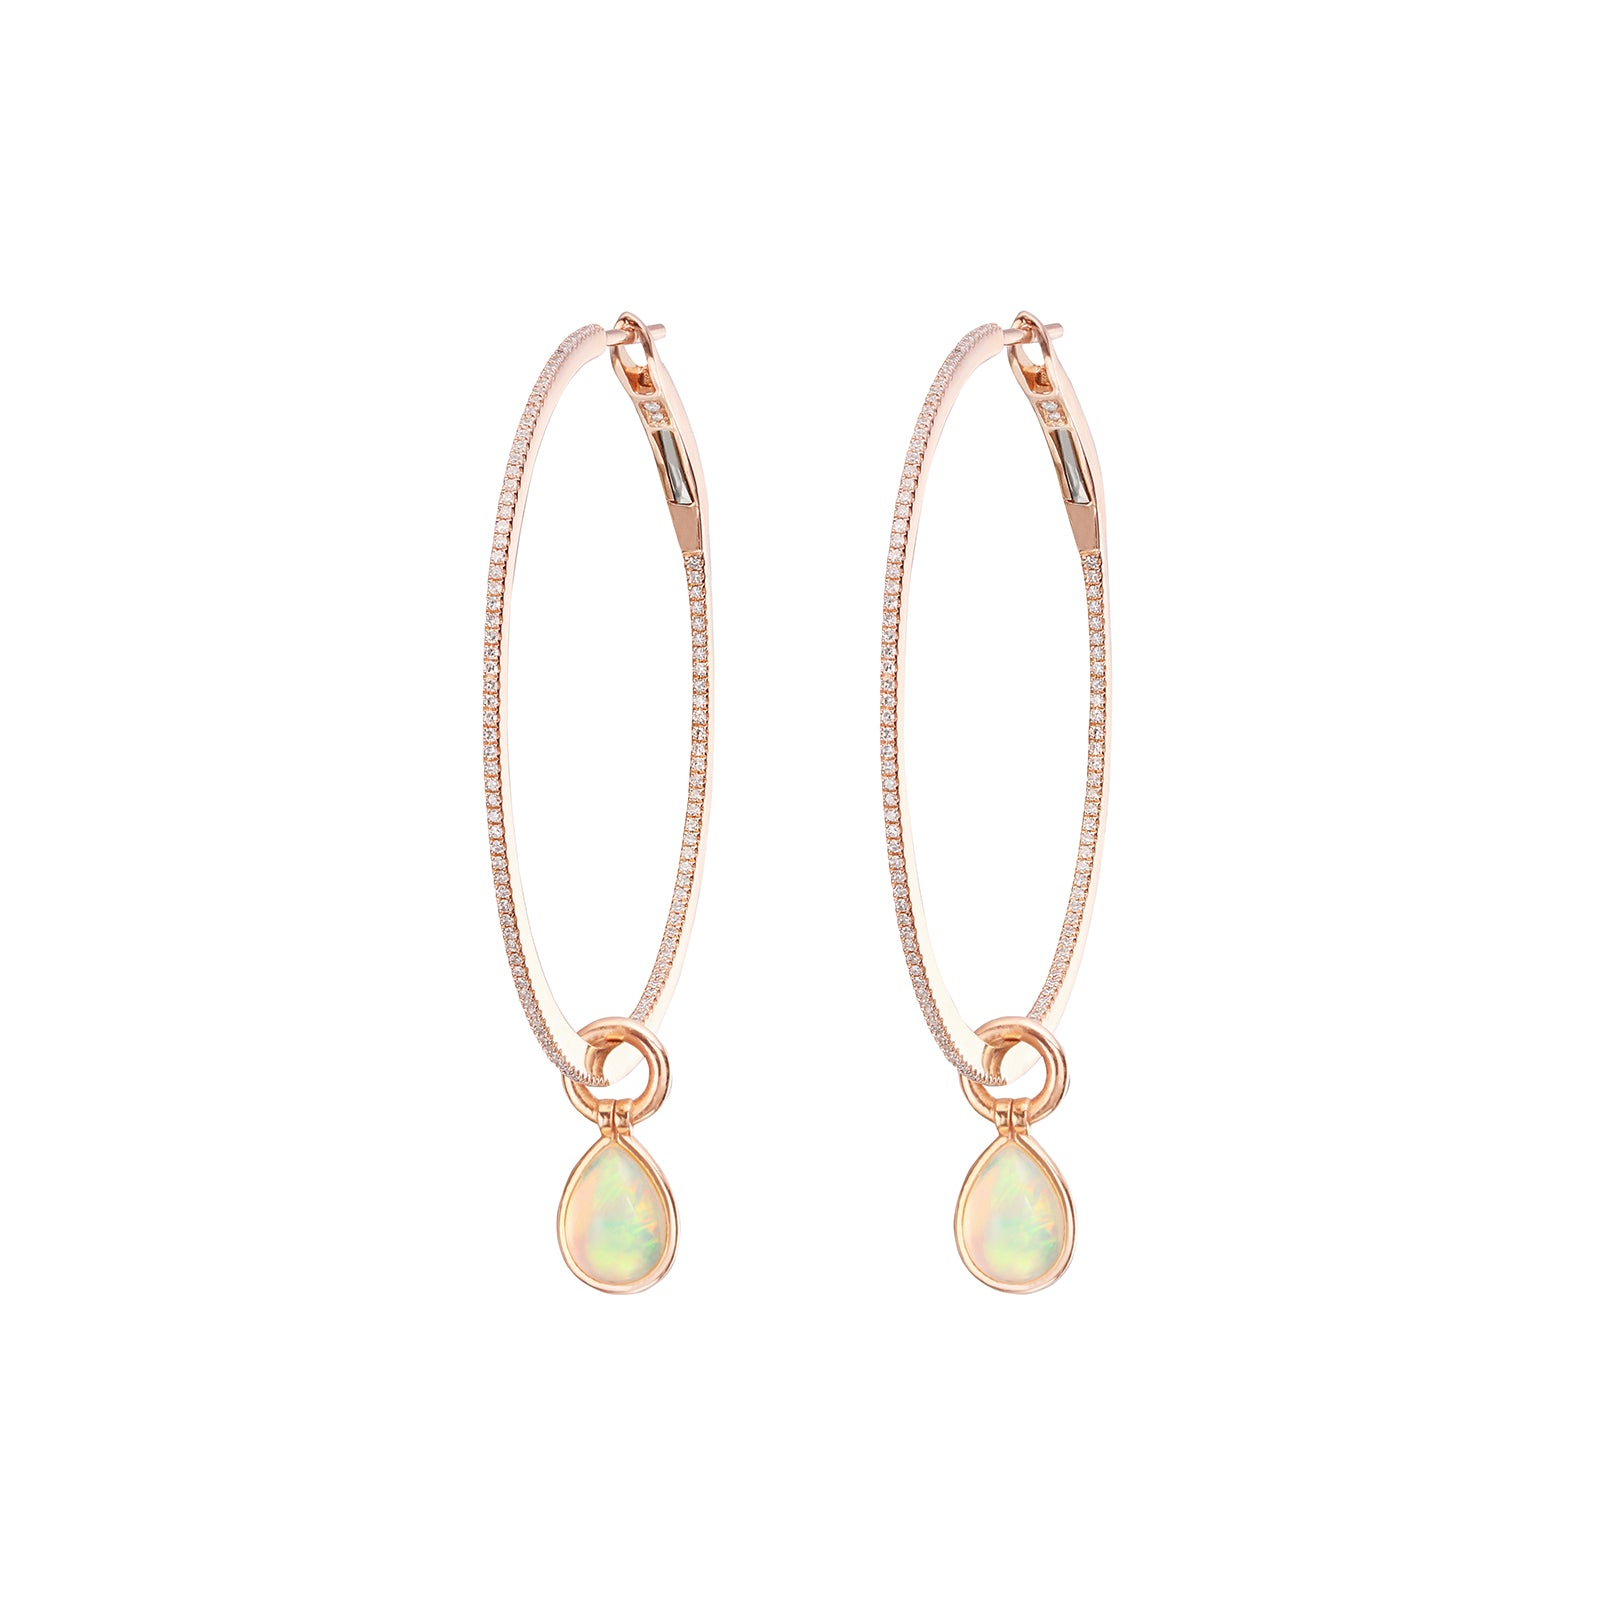 Nina Runsdorf Flip Opal & Diamond String Hoops - Earrings - Broken English Jewelry